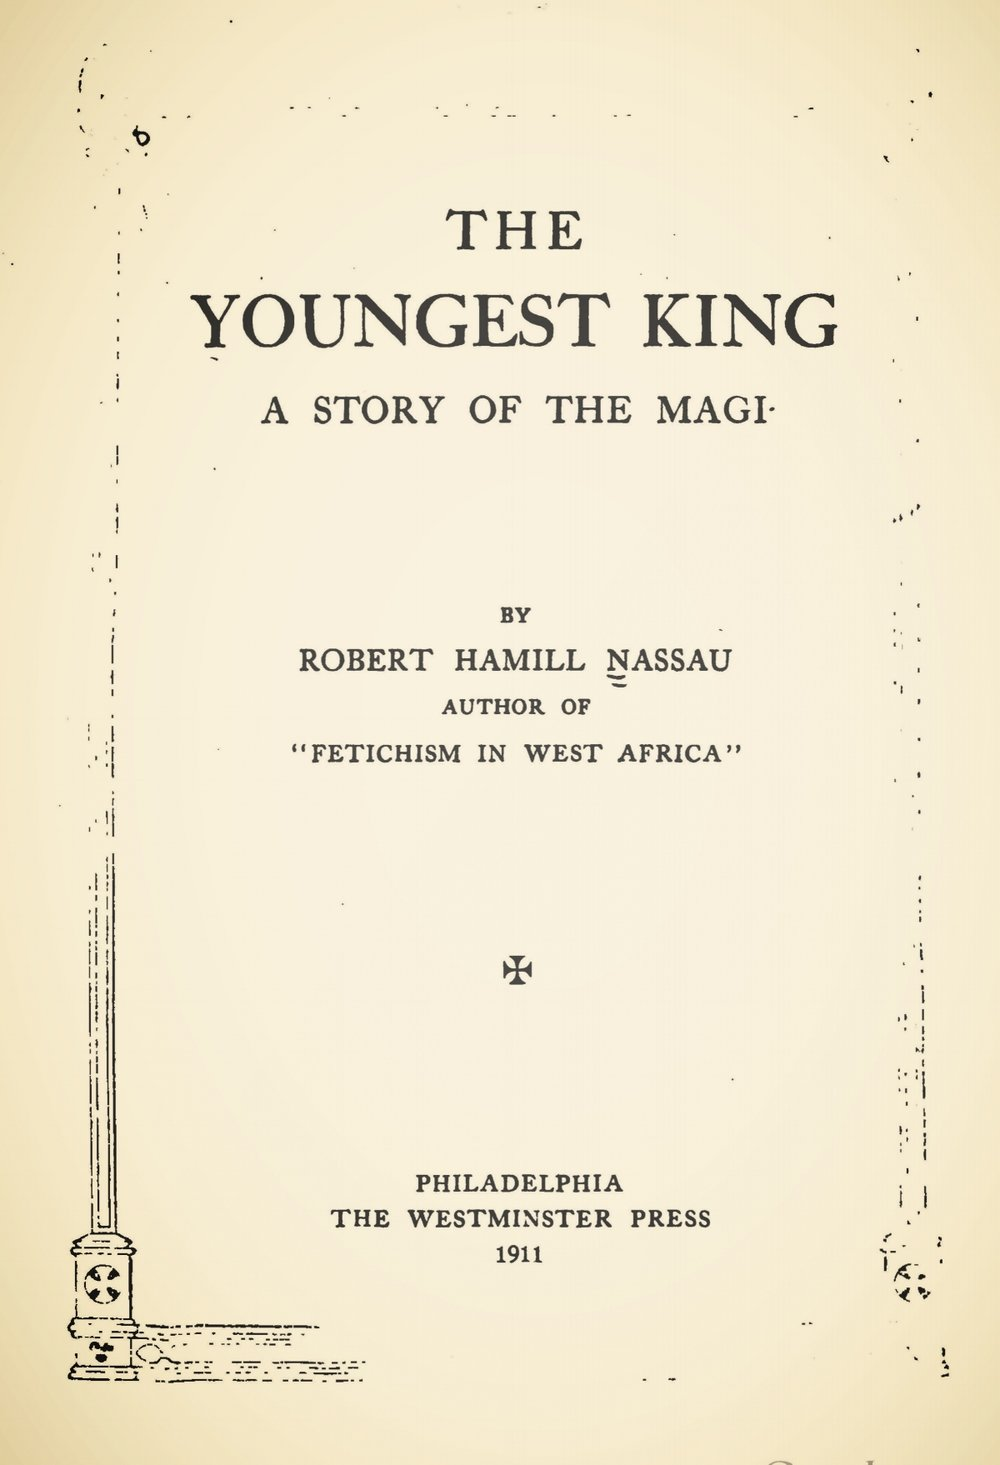 Nassau, Robert Hamill, The Youngest King Title Page.jpg